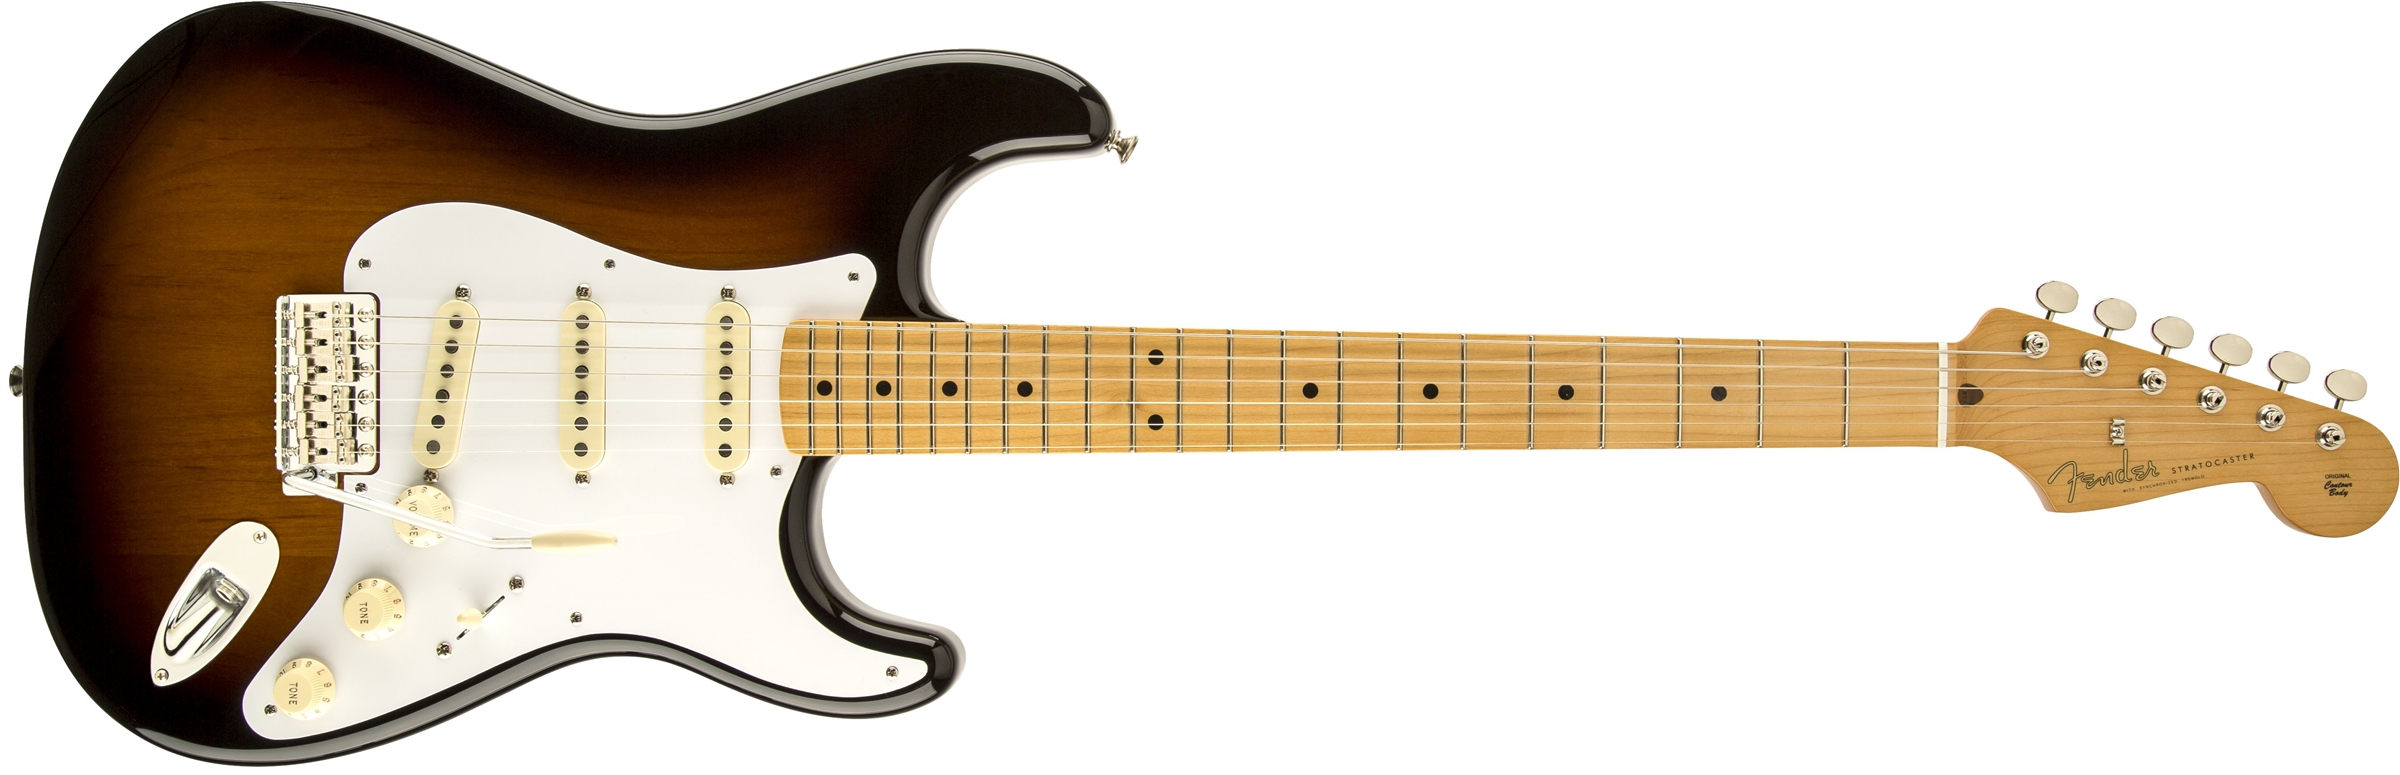 0131002303_gtr_frt_001_rr classic series '50s stratocaster� fender electric guitars  at webbmarketing.co